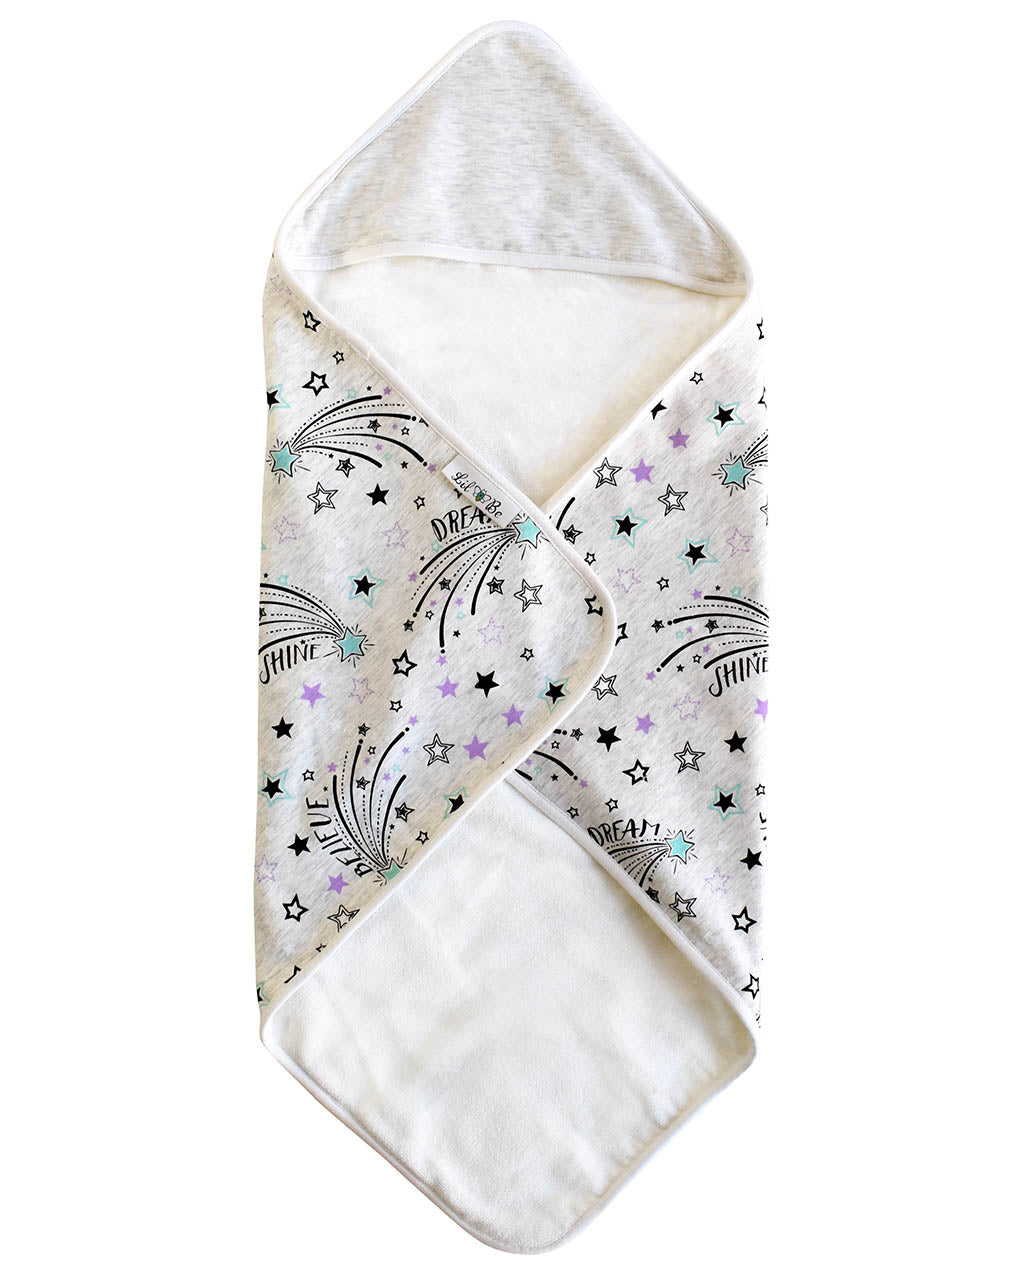 Shooting Stars Hooded Towel